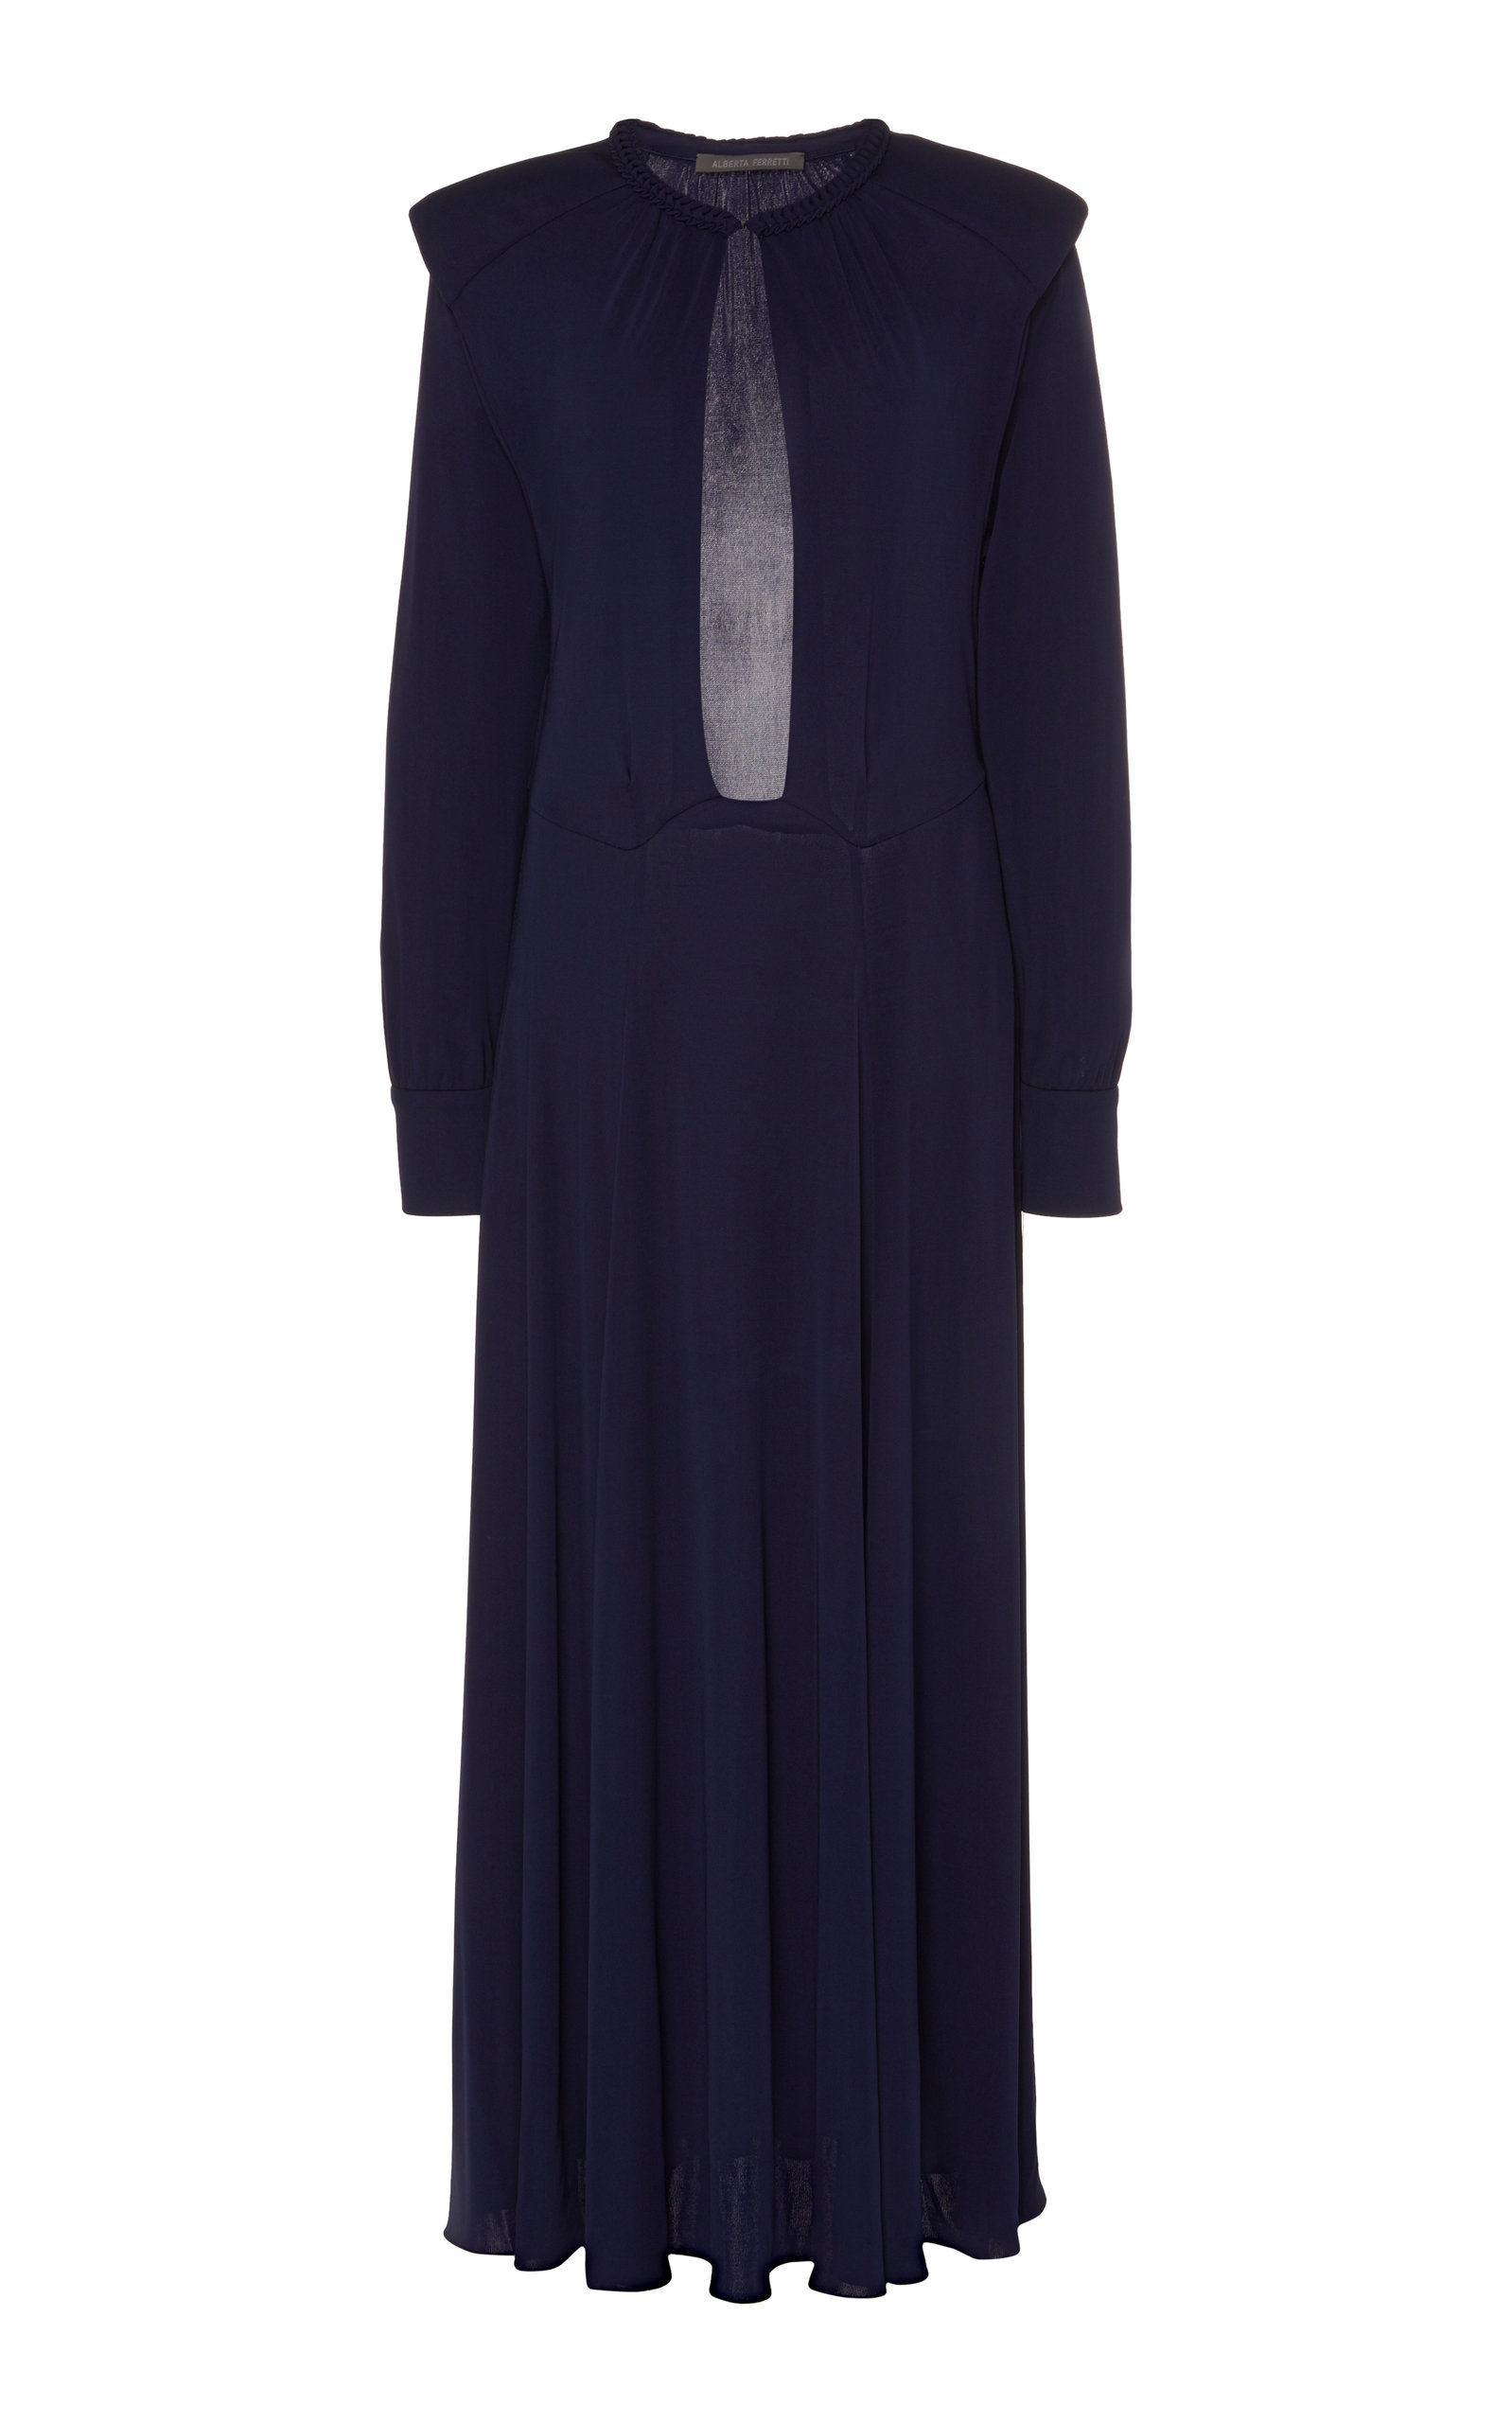 Buy Alberta Ferretti Cut-Out Silk-Effect Dress online, shop Alberta Ferretti at the best price